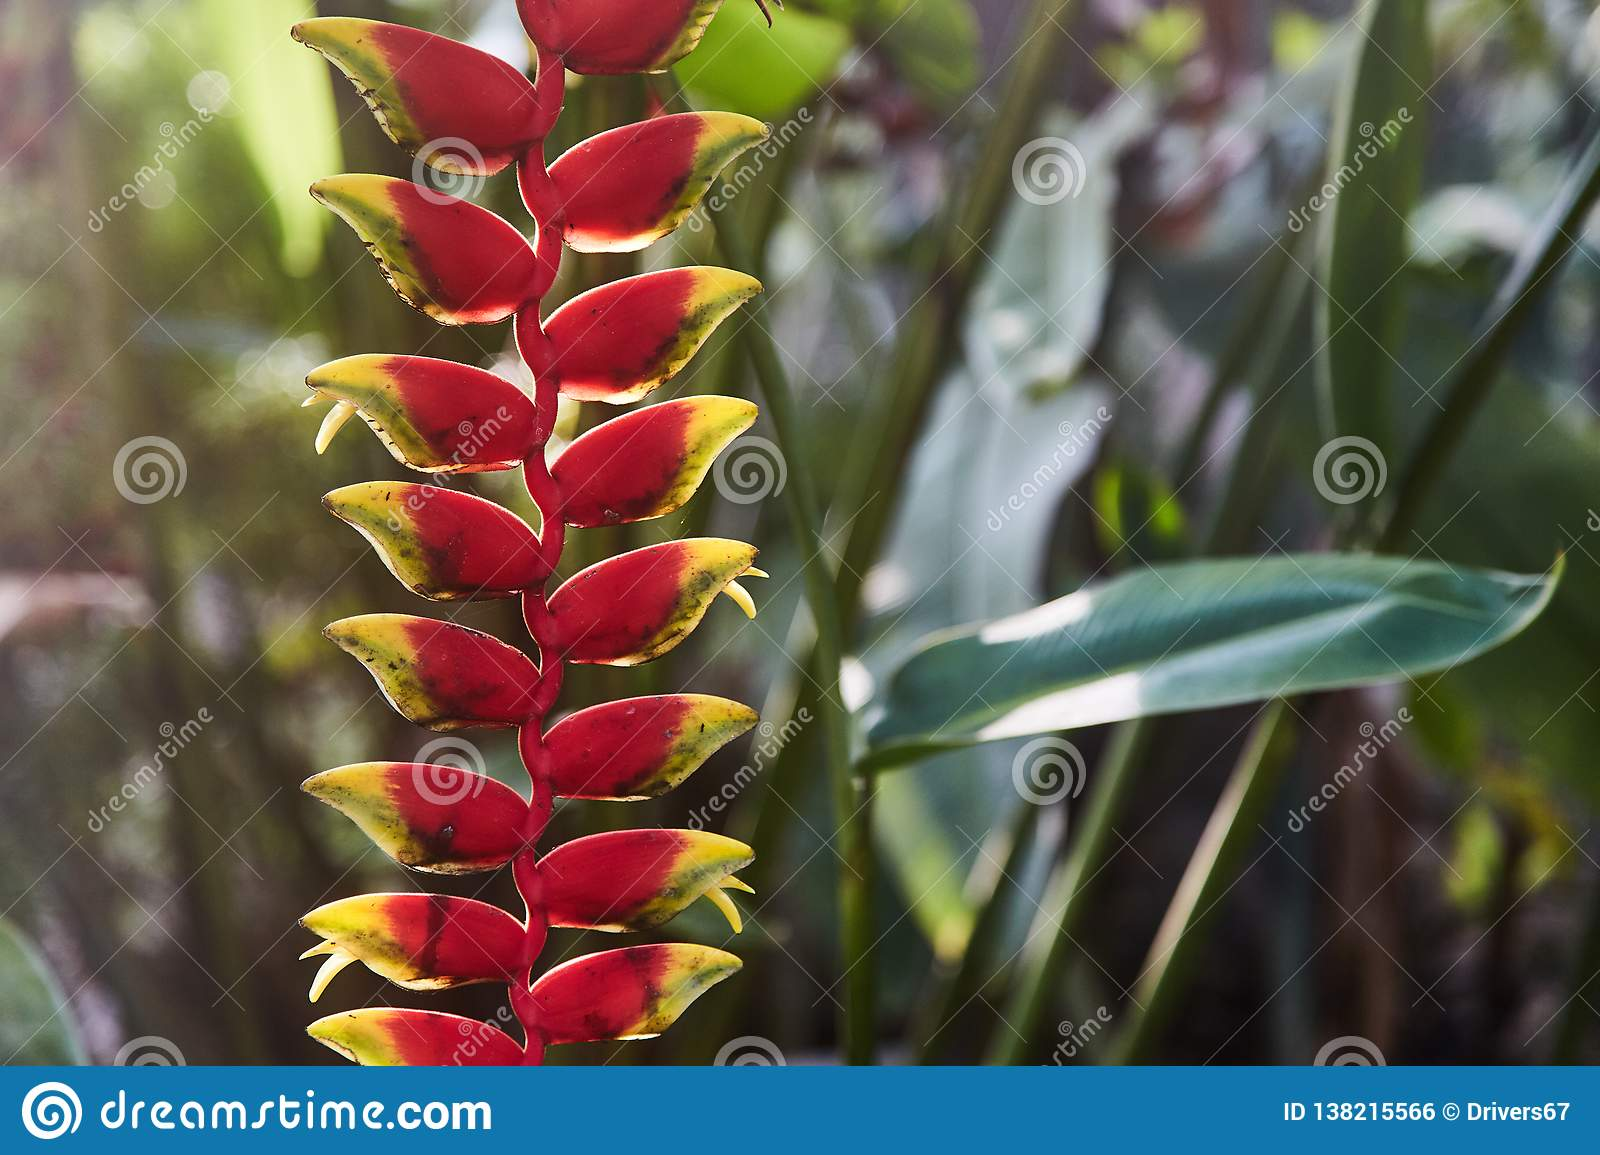 Colorful tropical flowers. Heliconia bihai Red palulu flower. Red color.